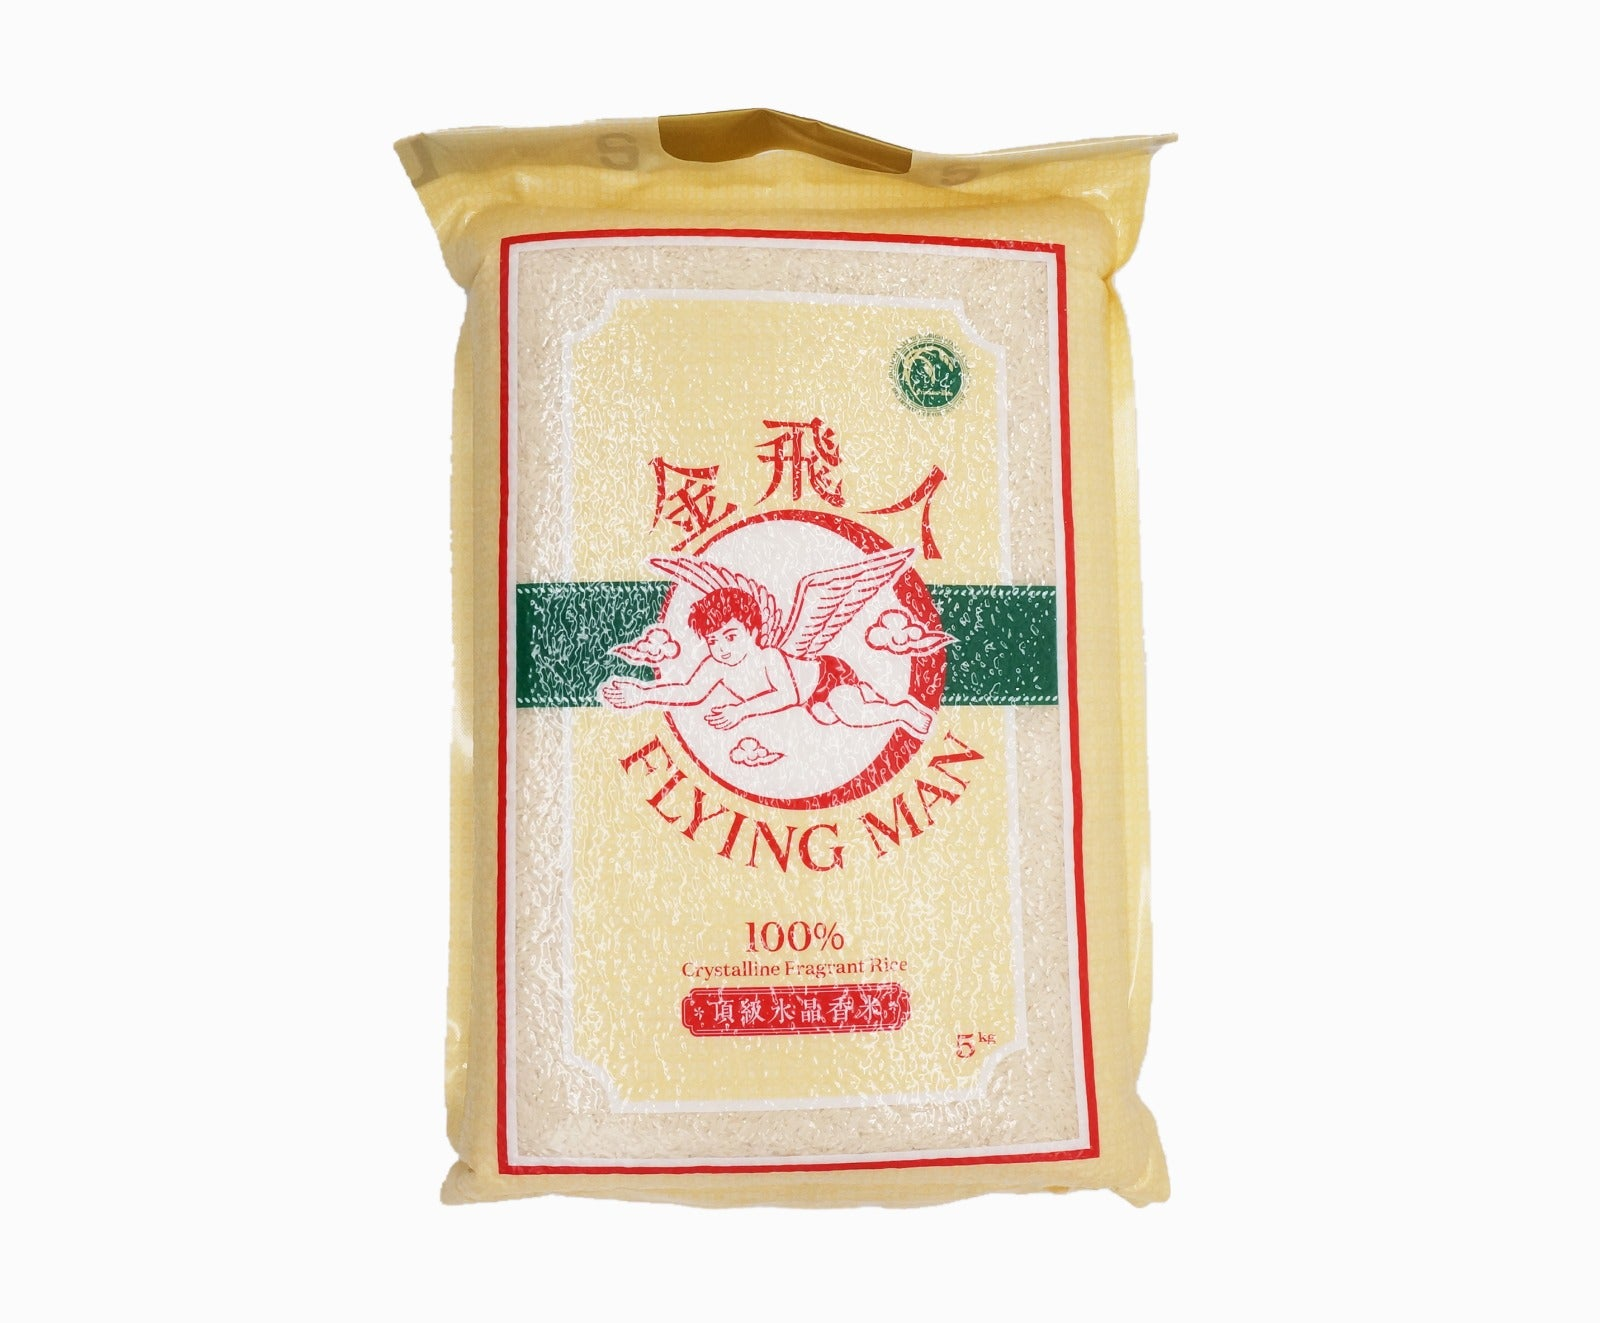 Flying Man Crystalline Fragrant Rice (5Kg – Piece)